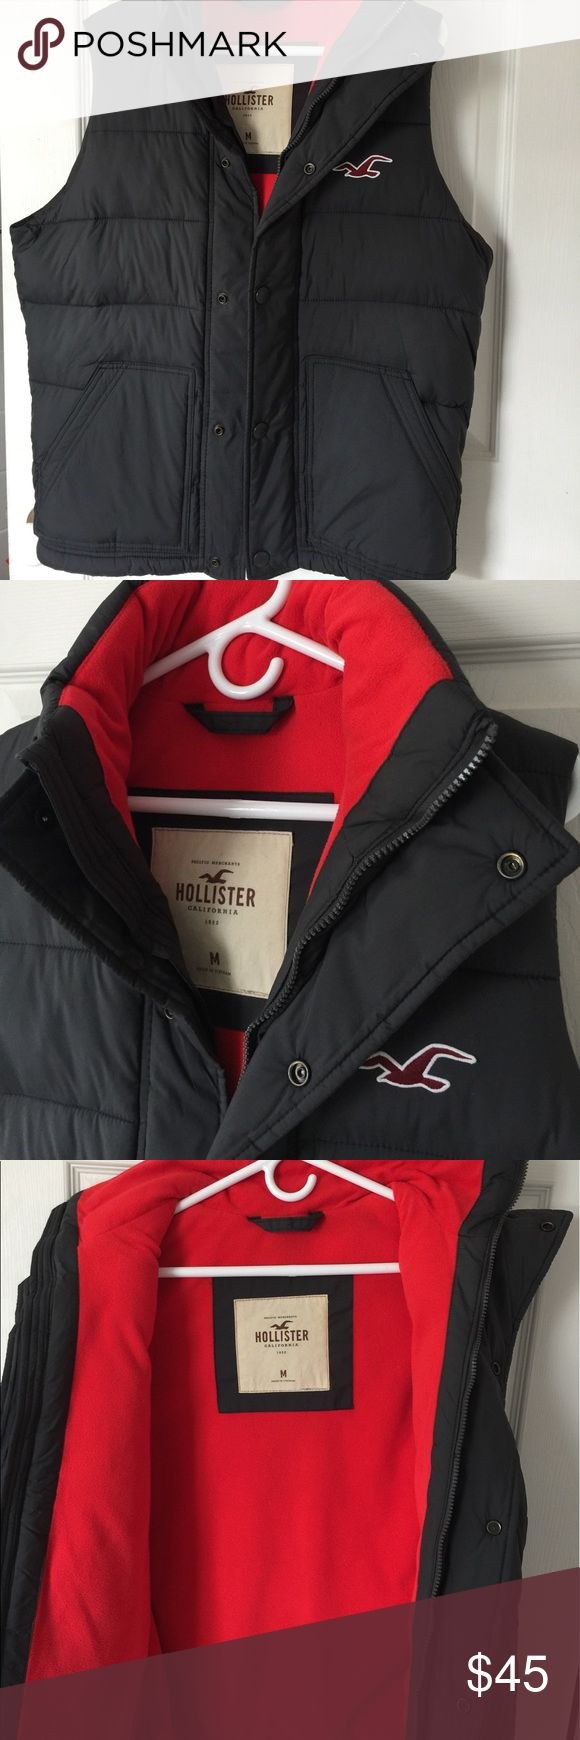 Men's Puffer Vest Hollister Warm Puffer Vest, rarely worn. Still in great condition. Bright red interior lining. Interior drawstring cord as well. No inside pocket, just 2 exterior pockets as shown. Color is very dark gray, almost like charcoal. Kept in a smoke/pet free household. Hollister Jackets & Coats Puffers